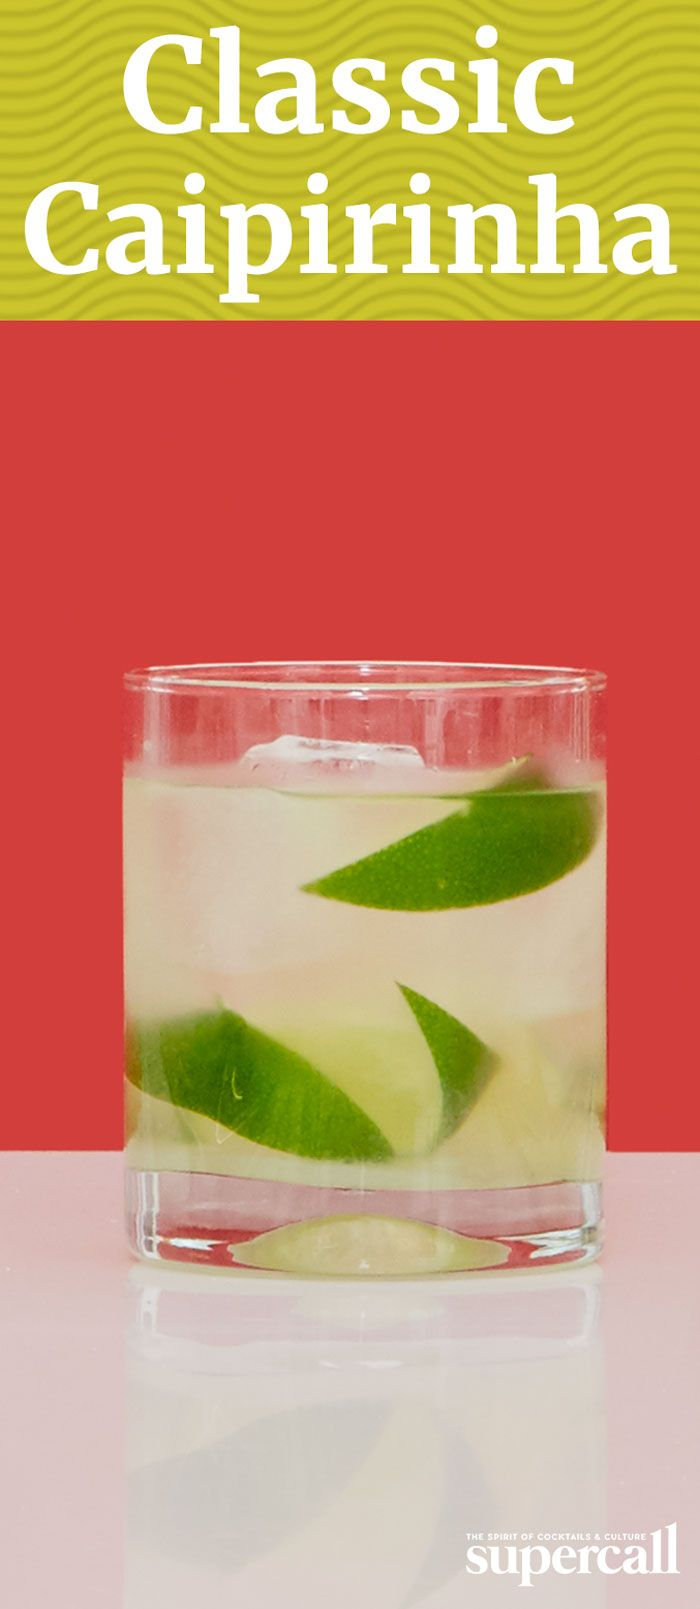 INGREDIENTS: 2OZCACHAÇA  HALF A LIME, CUT INTO WEDGES  2BAR SPOONS OF SUGAR (APPROXIMATELY 2 TSP)